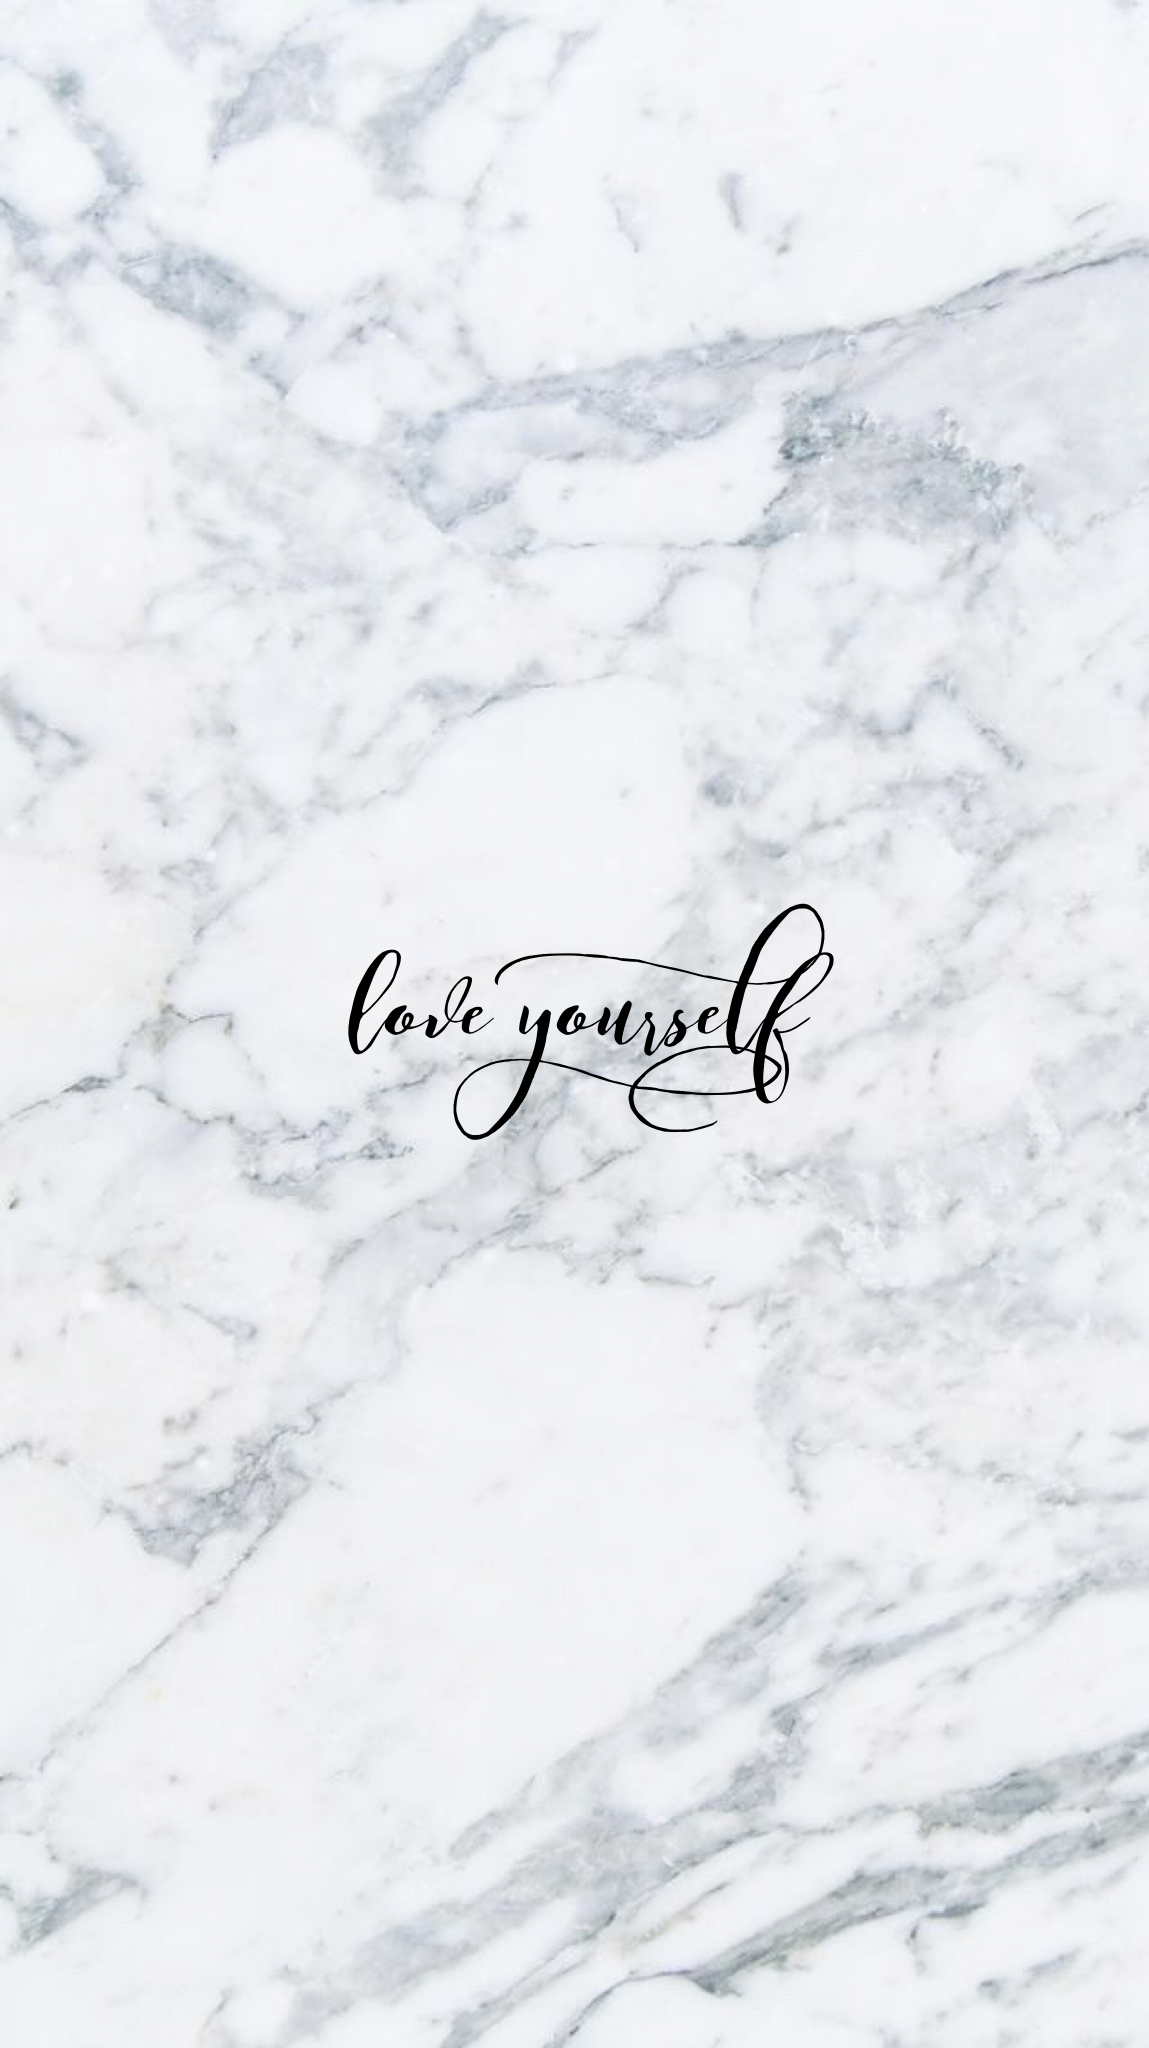 Love Yourself Quotes Wallpaper : Love Yourself iPhone Wallpaper @EvaLand Fondos de iphone Pinterest Wallpaper, Phone and ...